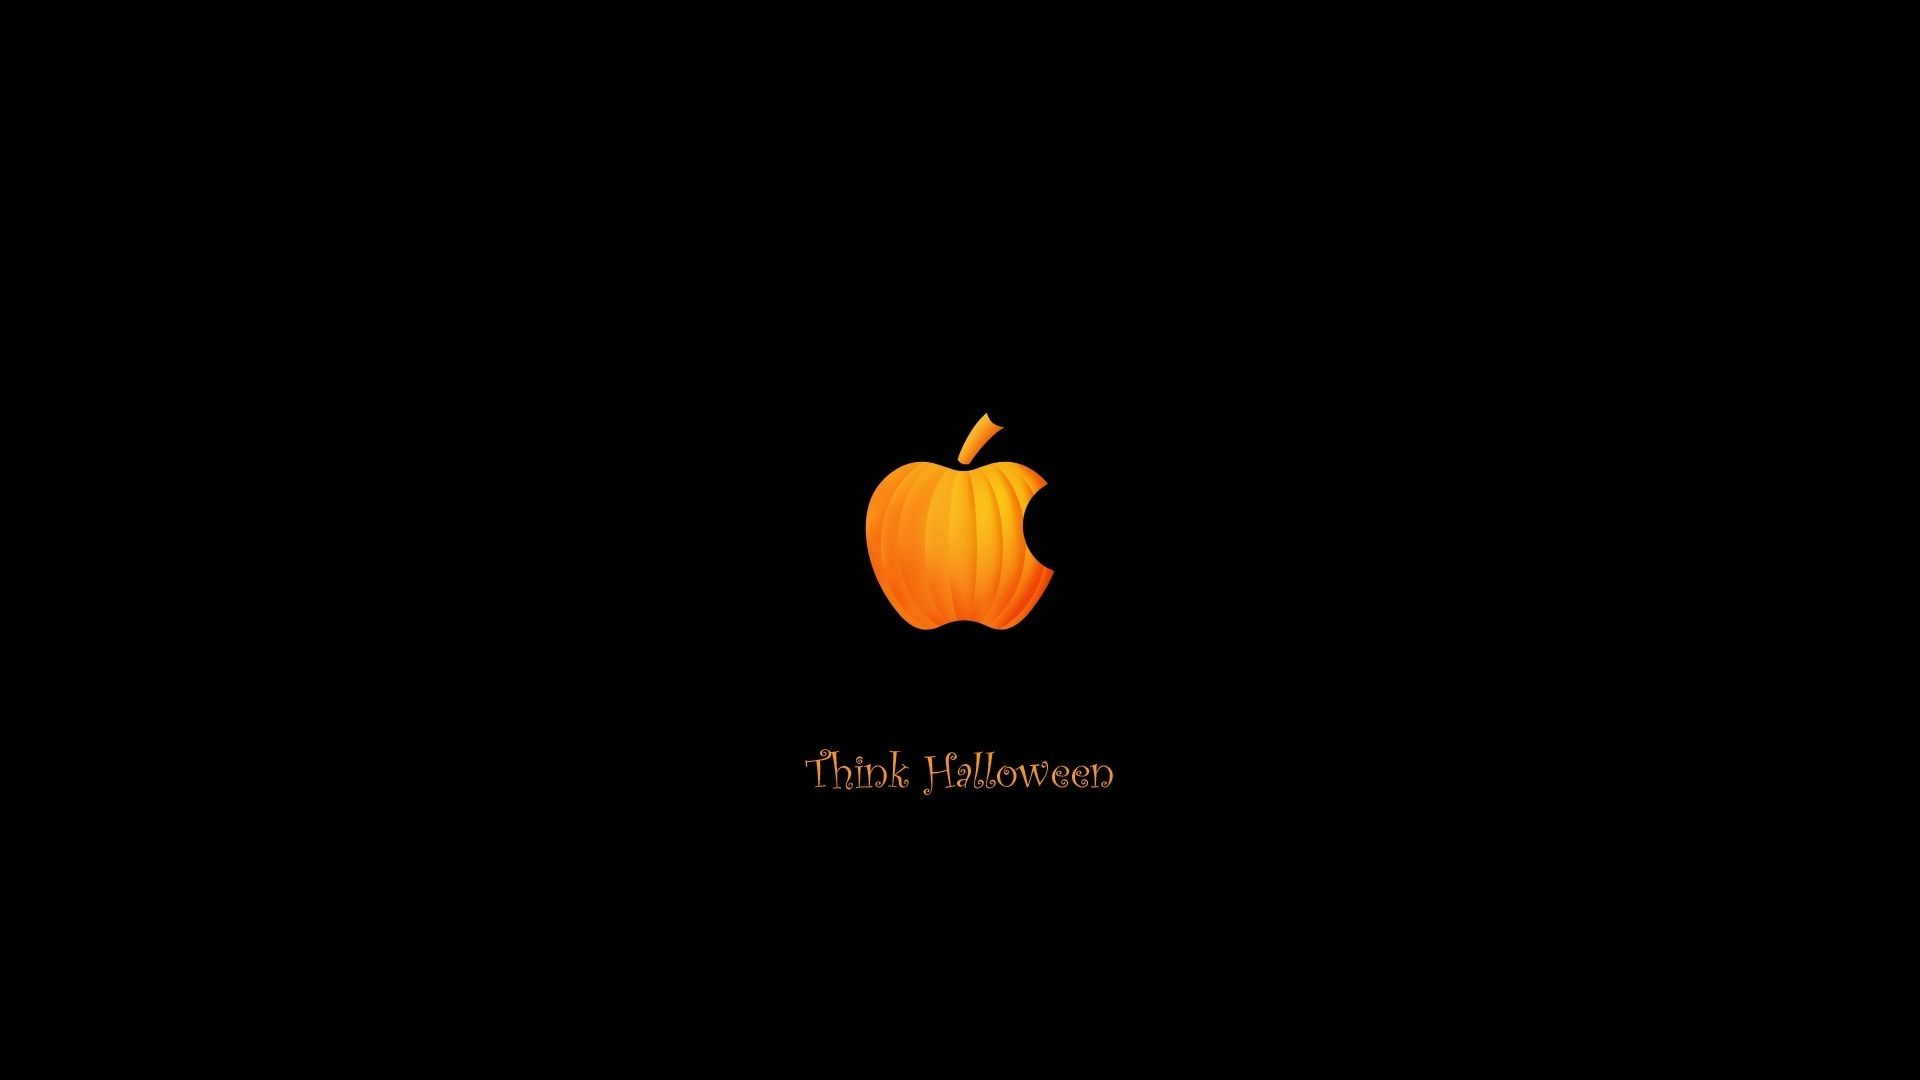 View Source Image Halloween Wallpaper Macbook Desktop Backgrounds Halloween Background Tumblr